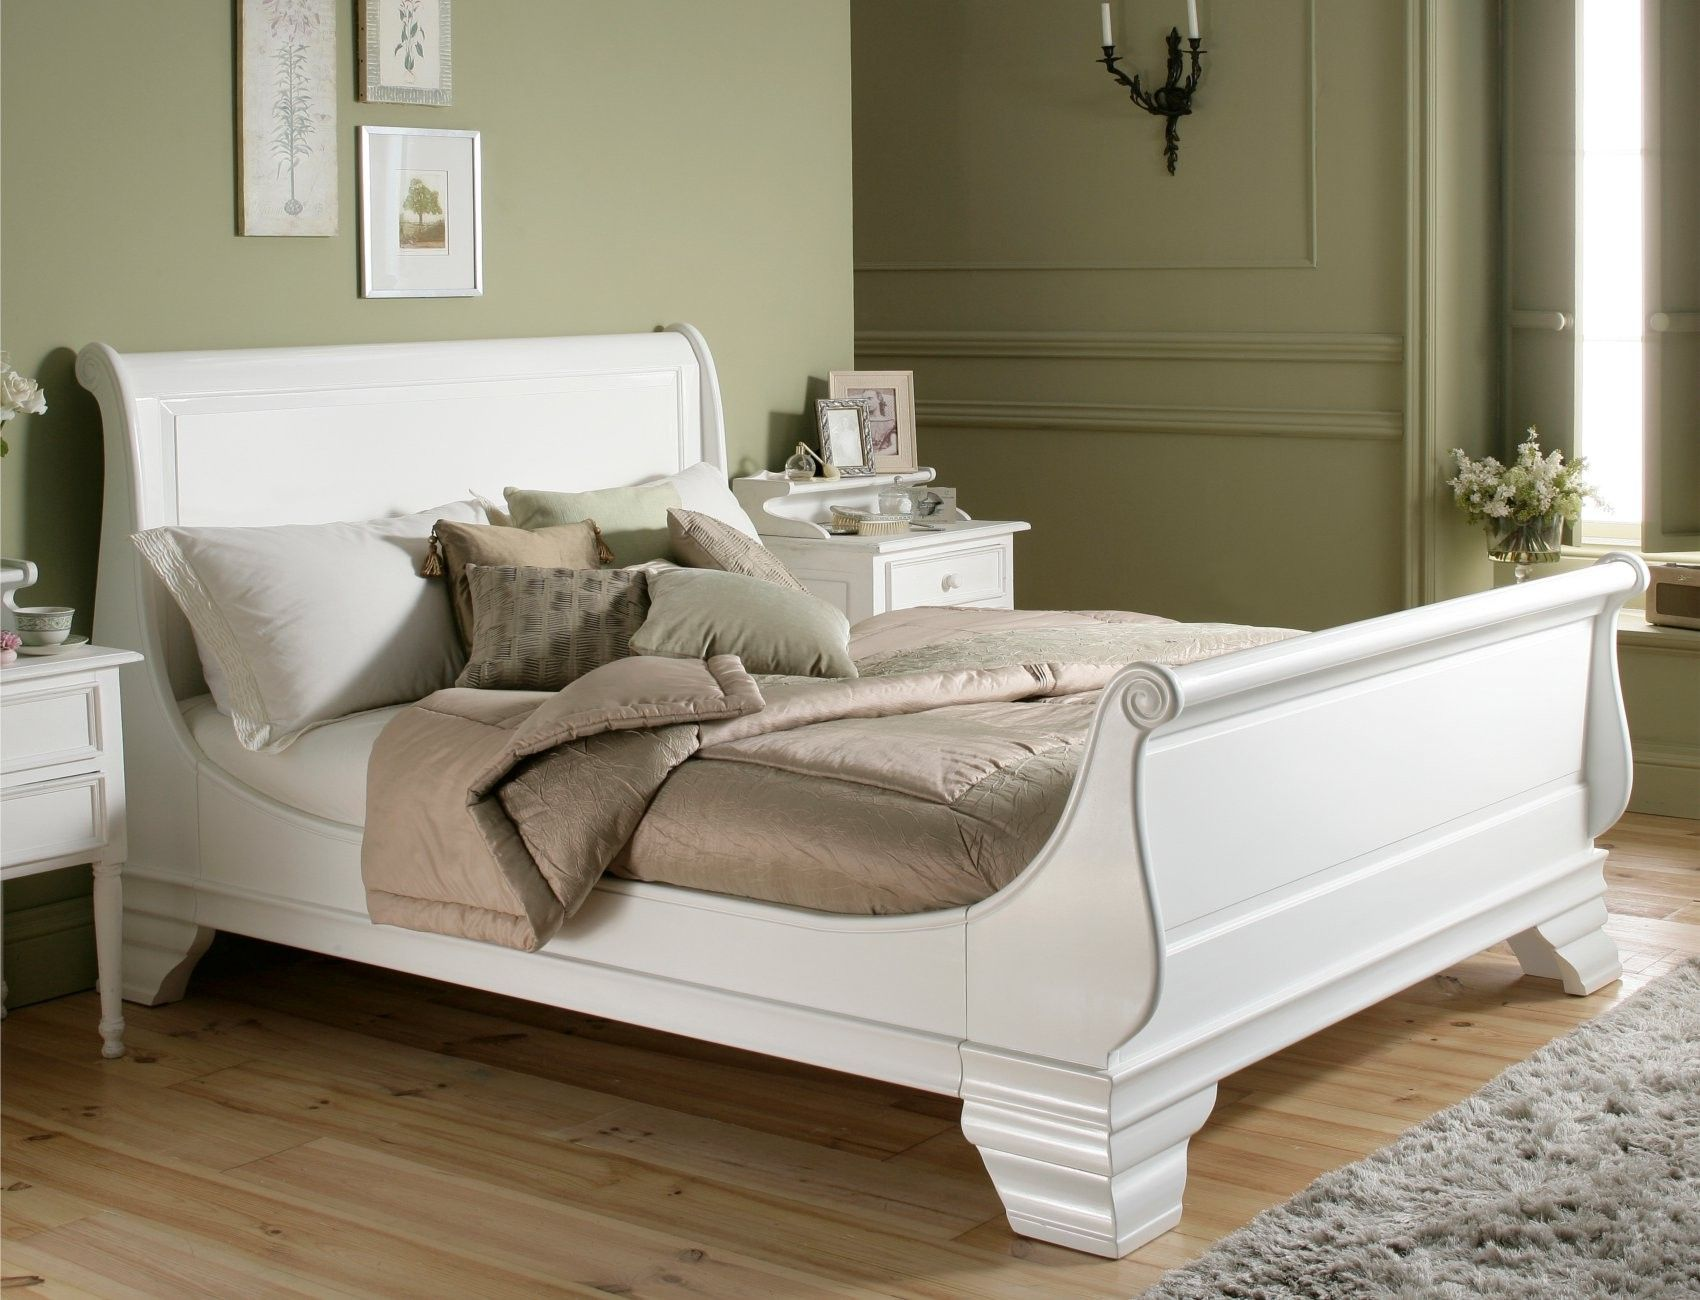 Bordeaux French Style White Wooden Sleigh Bed. sleigh bed  years ago we didnt have the luxury of a soft and